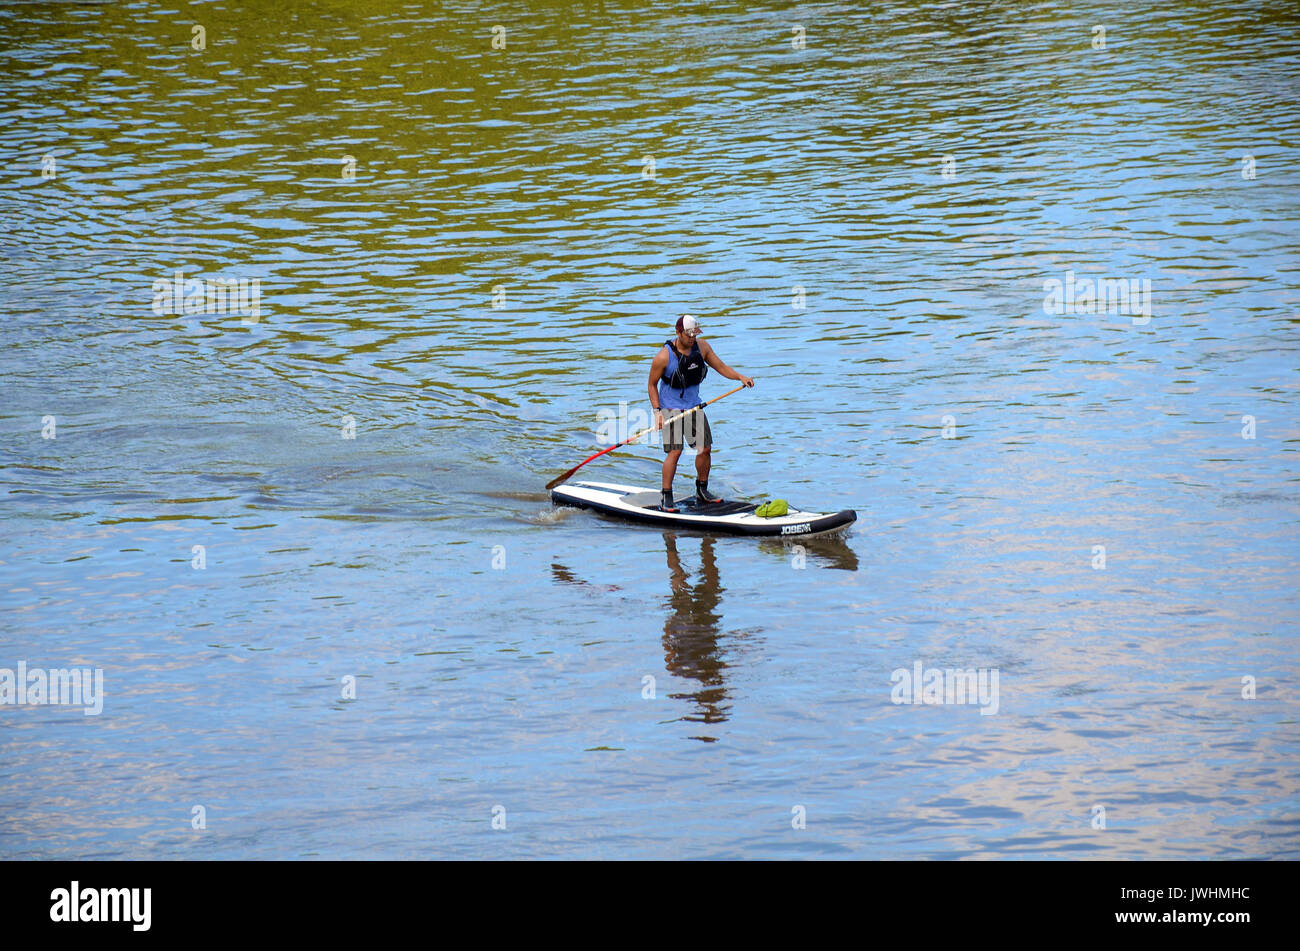 London, UK. 13th Aug, 2017. Sunny Sunday afternoon on Putney Bridge. Credit: JOHNNY ARMSTEAD/Alamy Live News Stock Photo